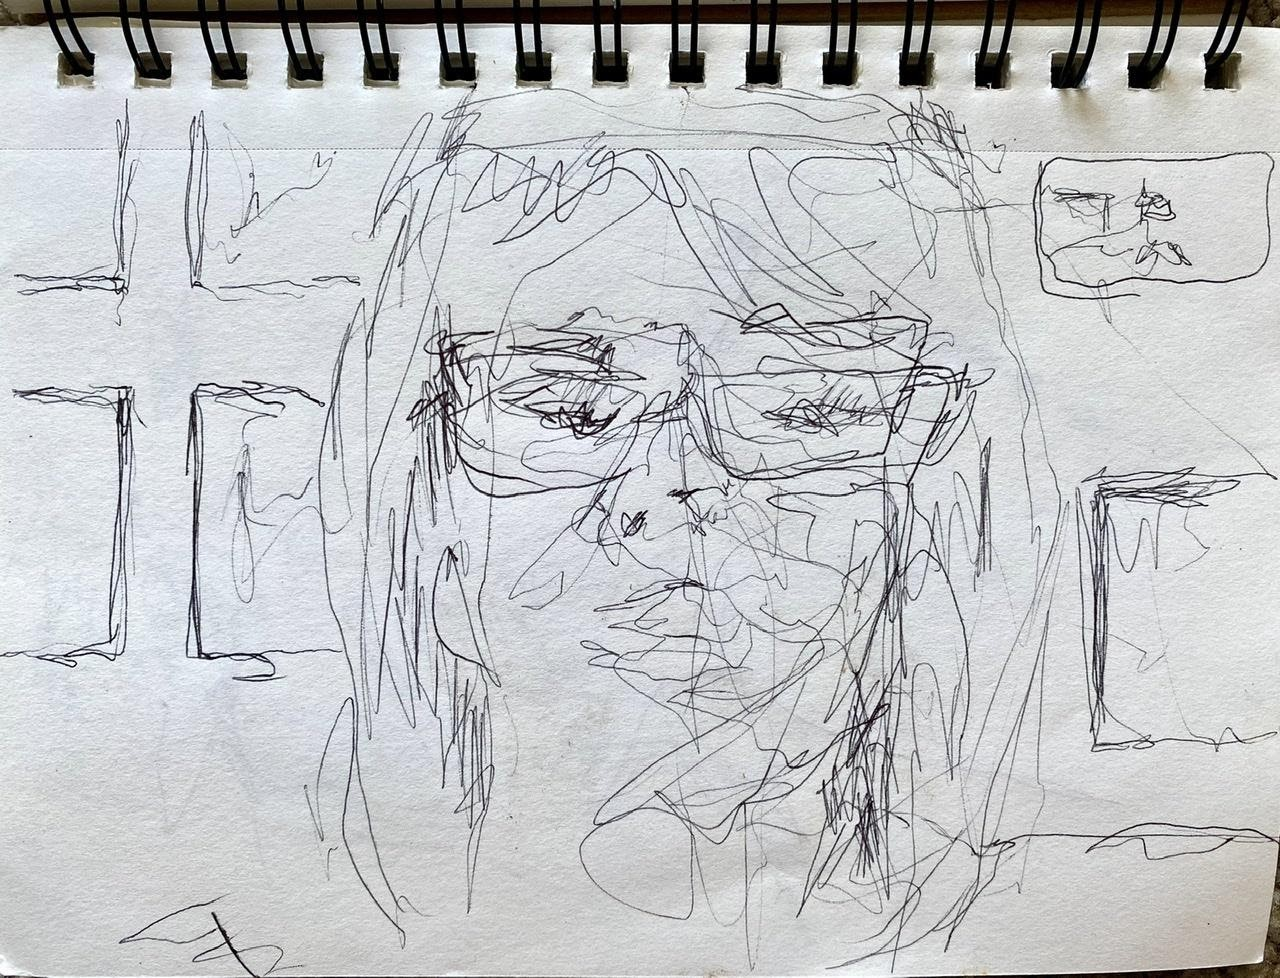 A rough sketch of a person with long hair and glasses